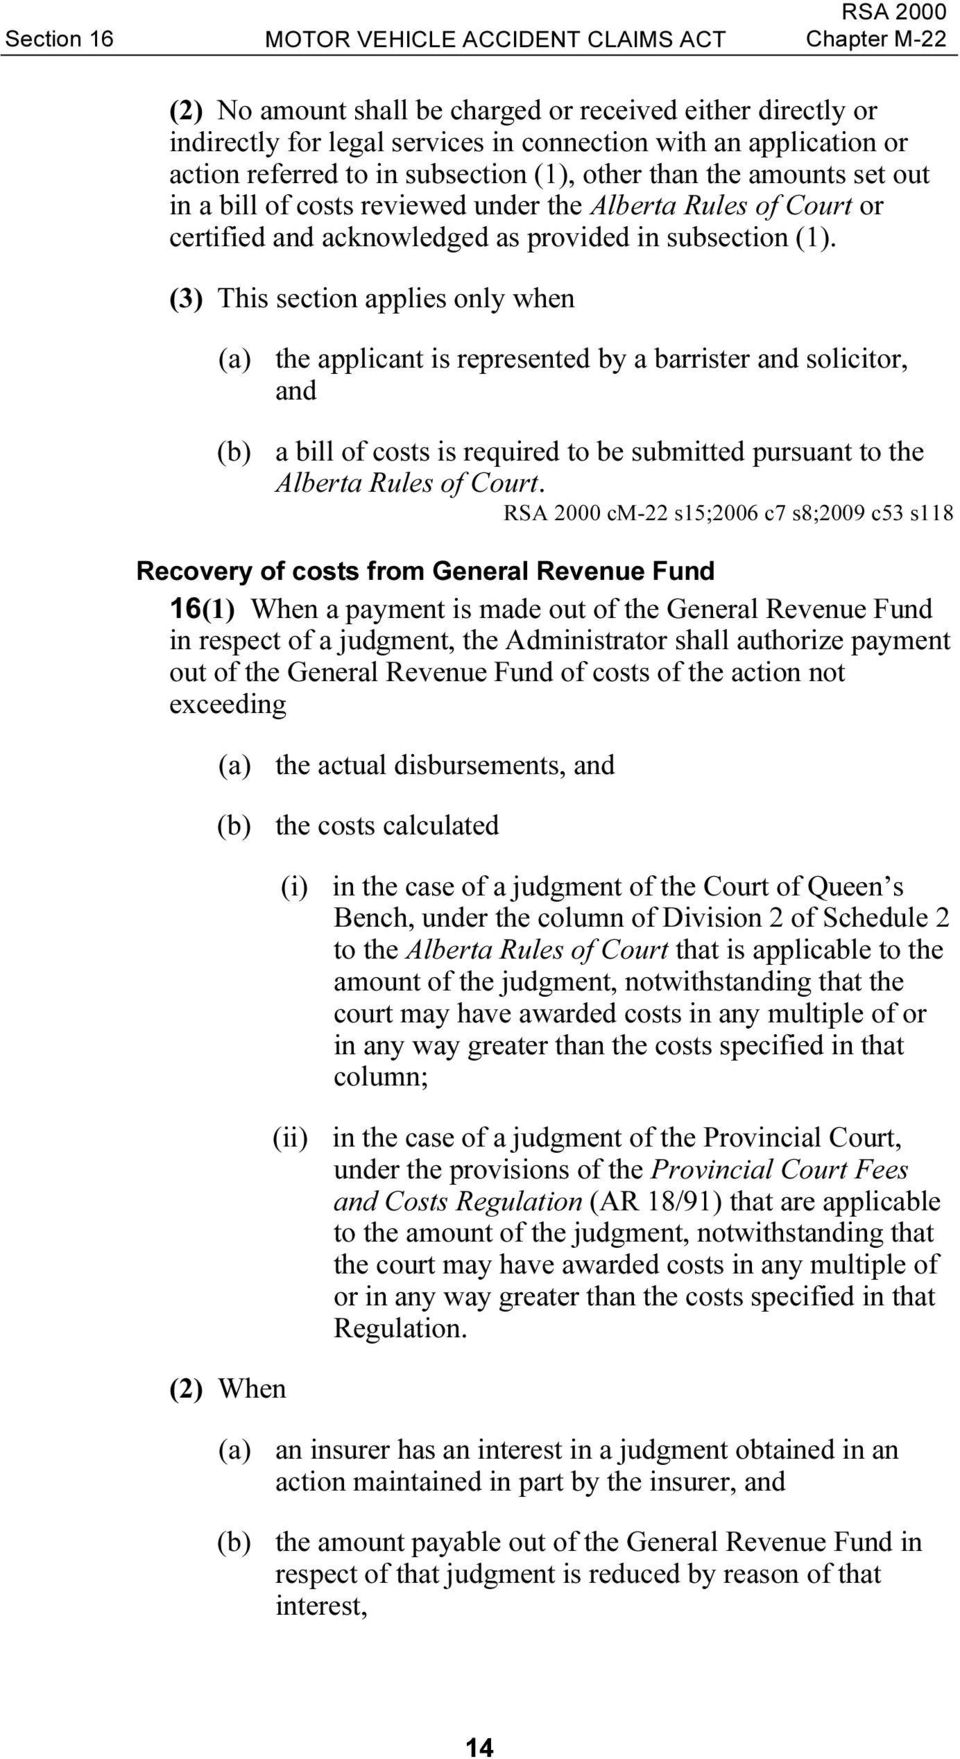 (3) This section applies only when (a) the applicant is represented by a barrister and solicitor, and (b) a bill of costs is required to be submitted pursuant to the Alberta Rules of Court.